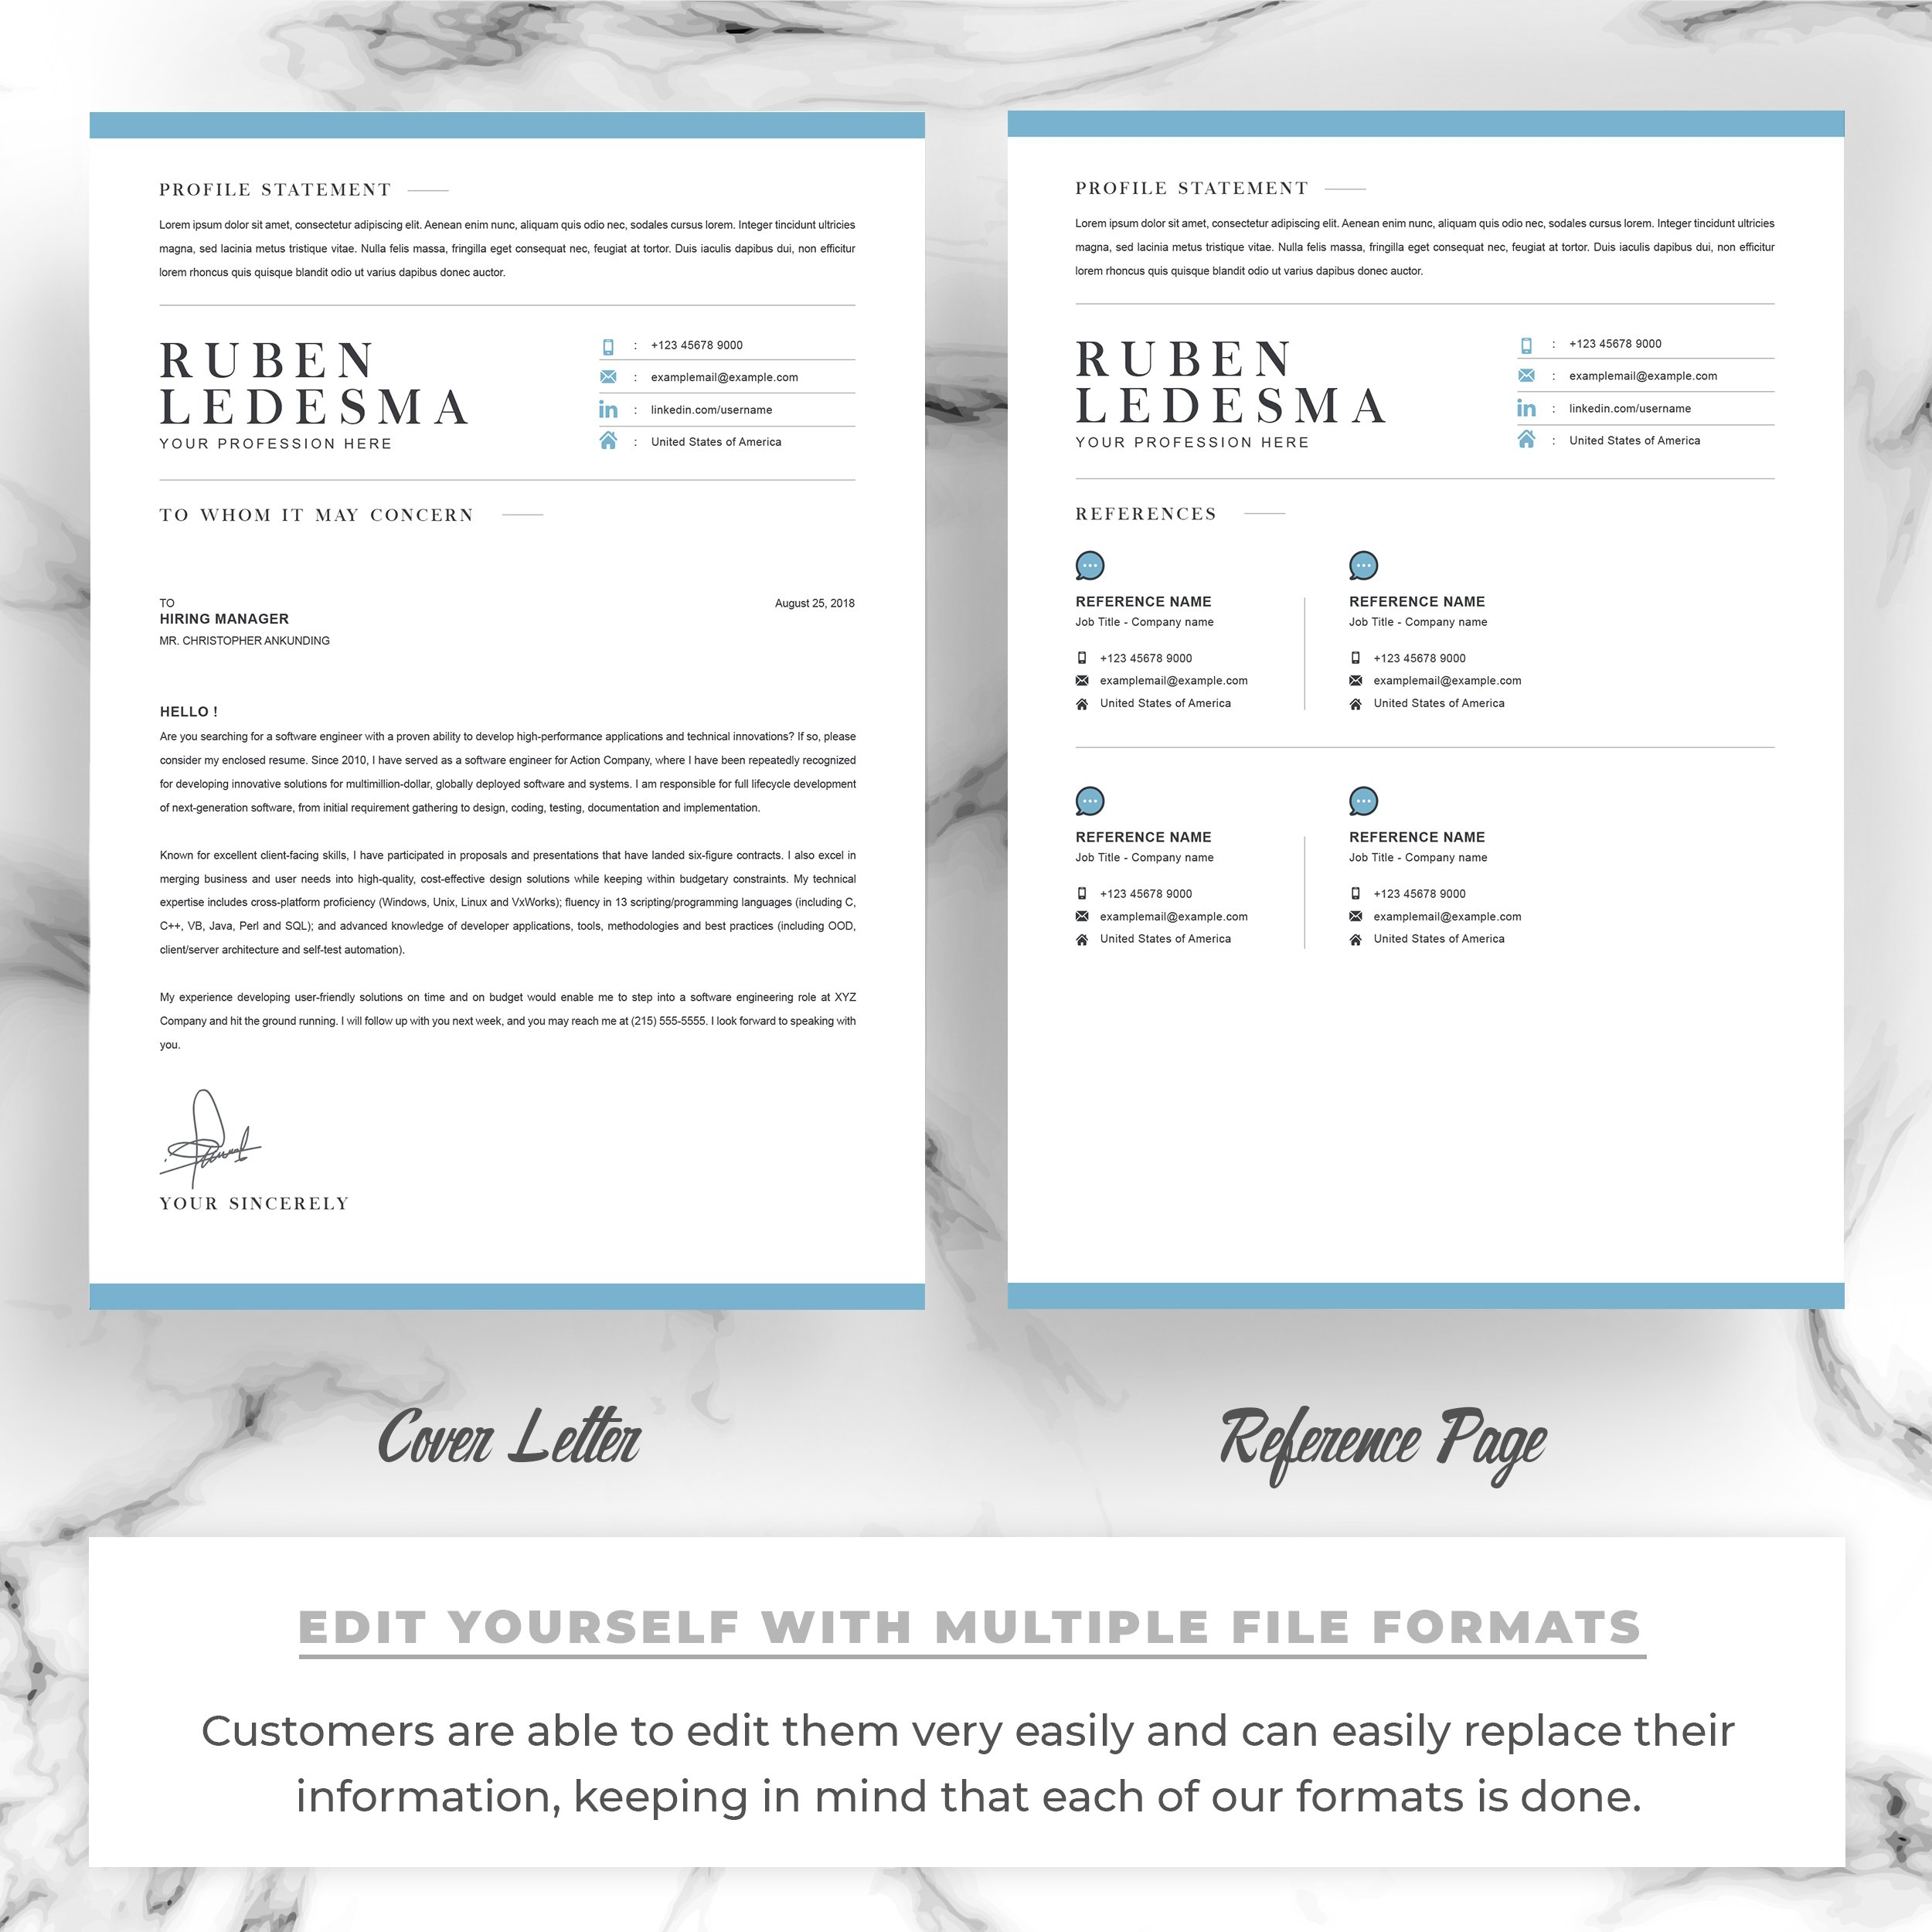 Free Word Cover Letter Template from cmkt-image-prd.freetls.fastly.net